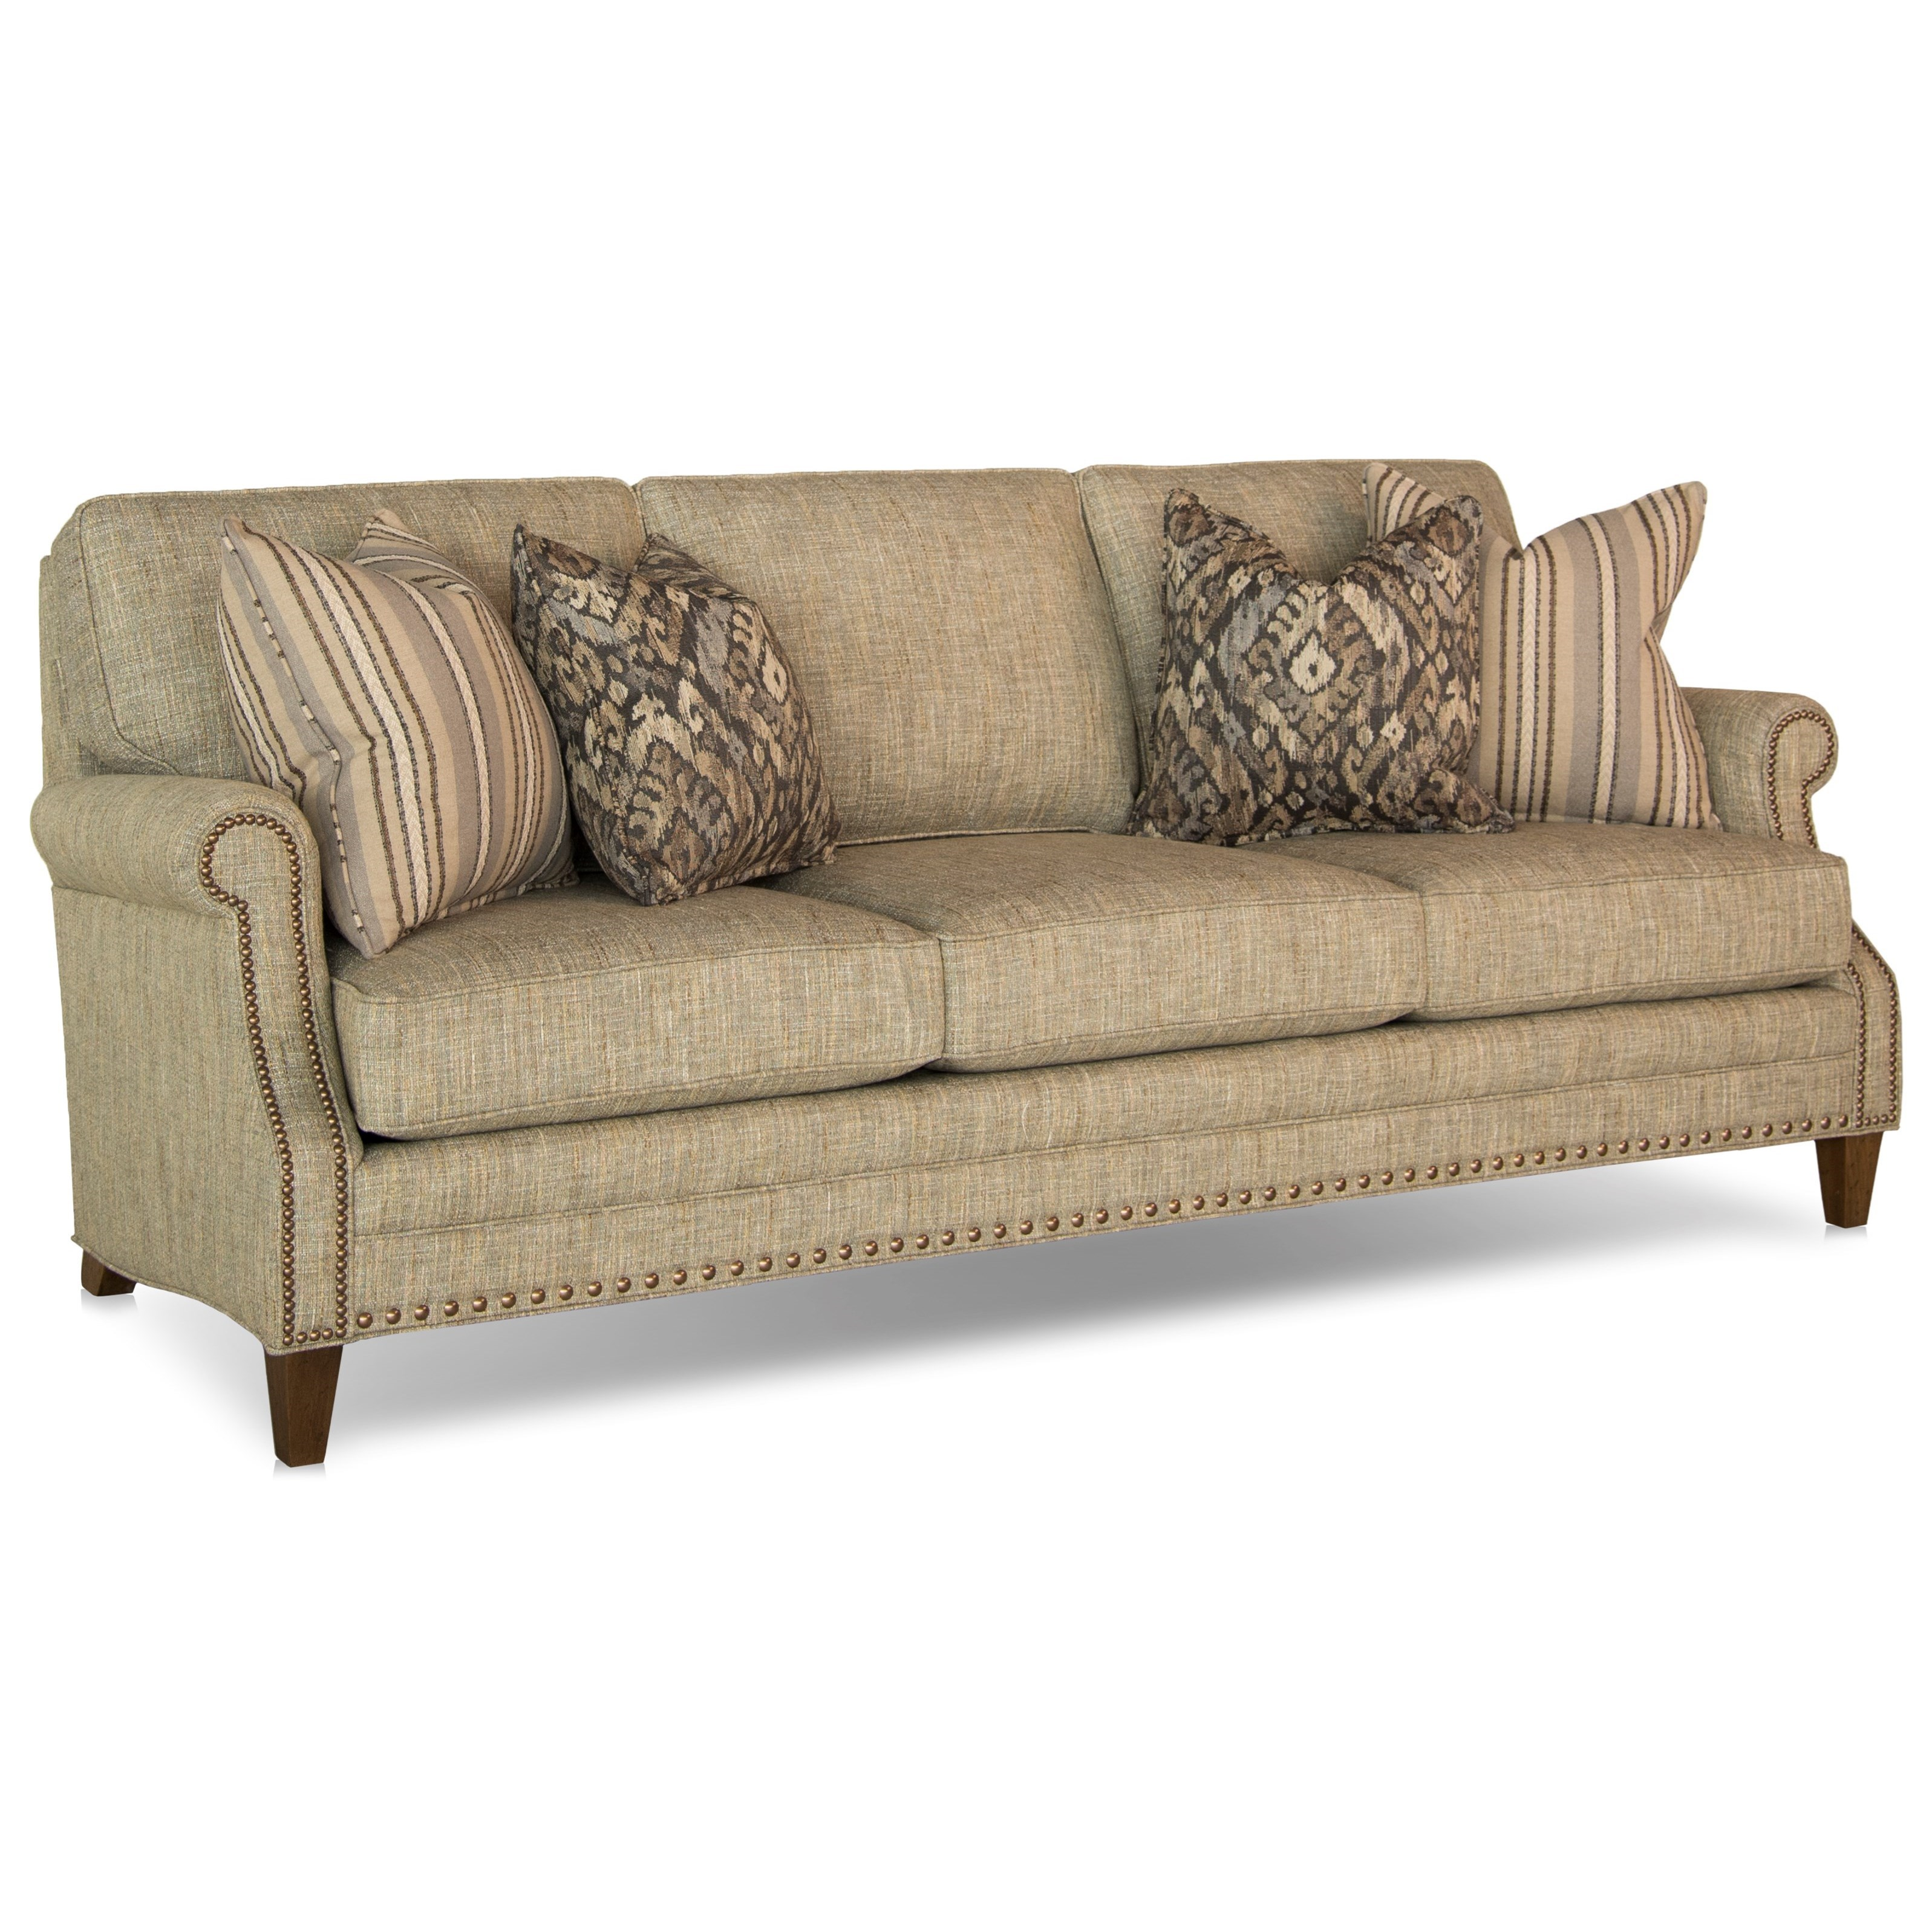 Smith Brothers 241 Sofa - Item Number: 241-10-398304